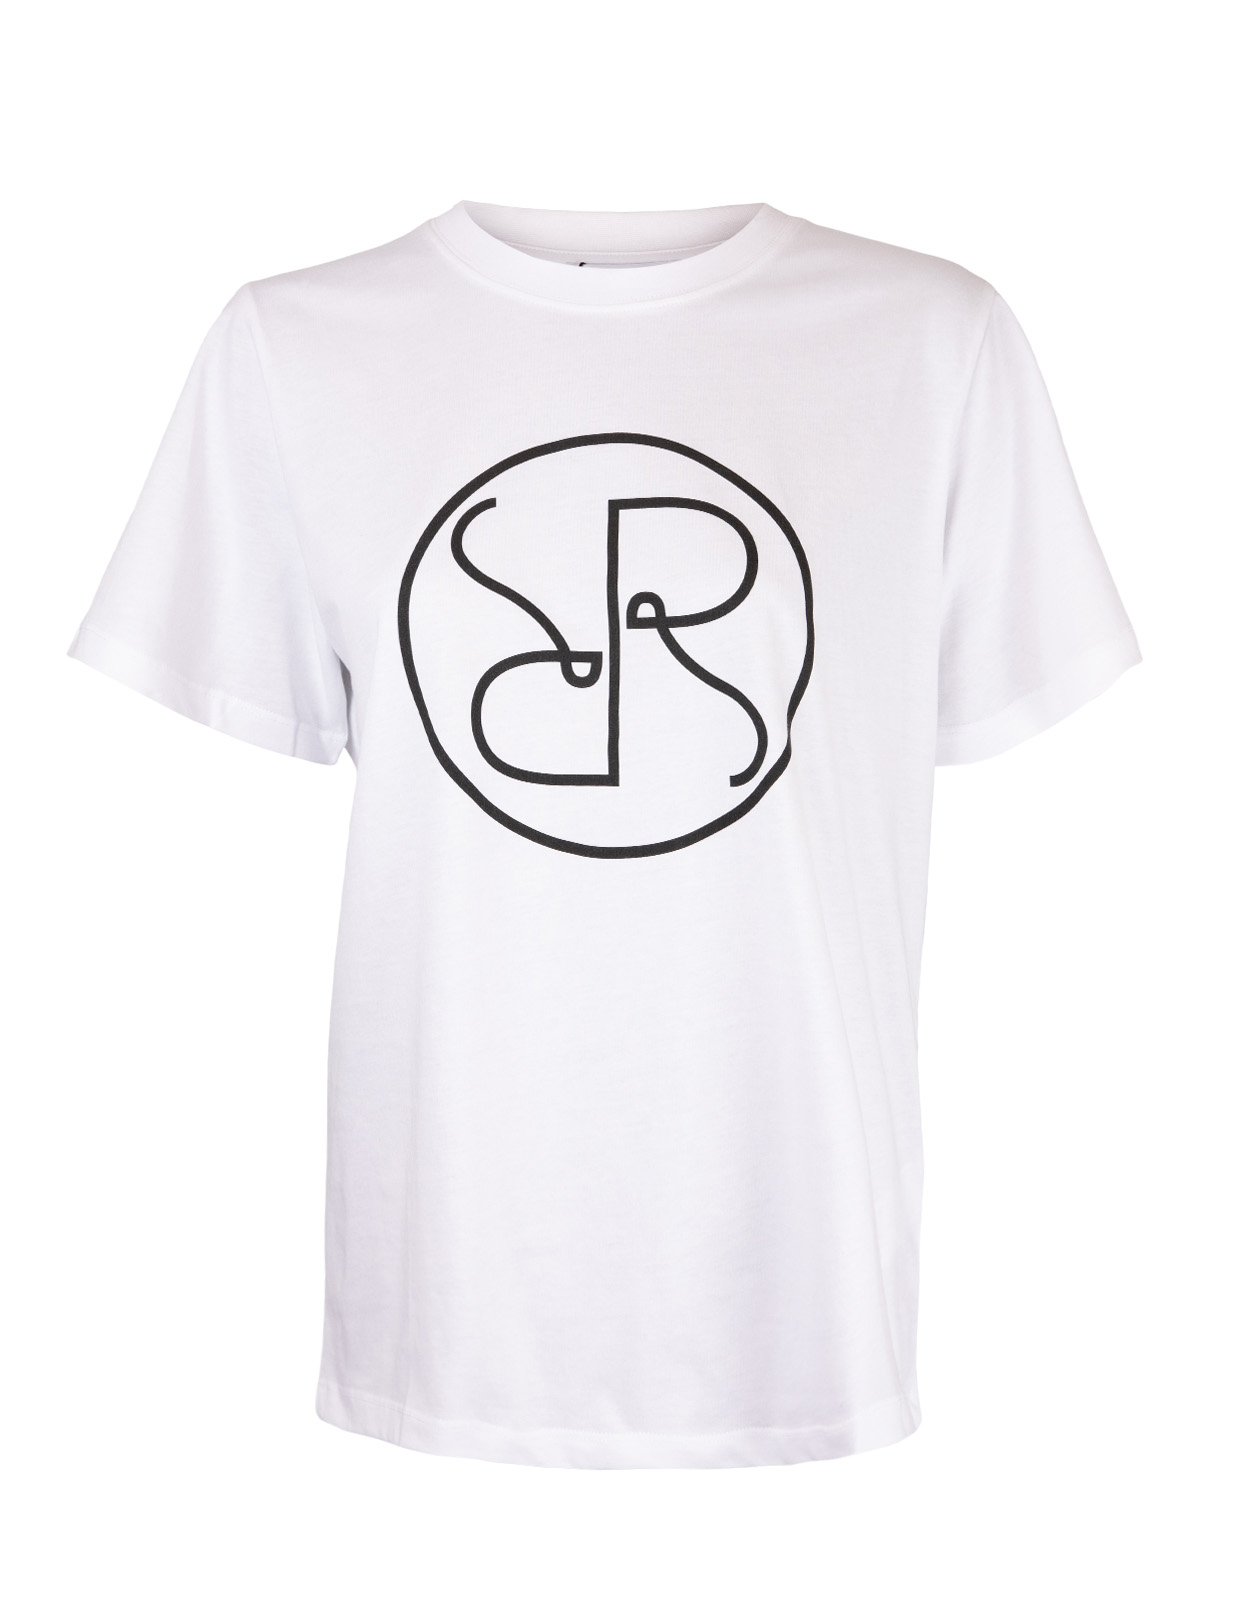 T-shirt Monogram White